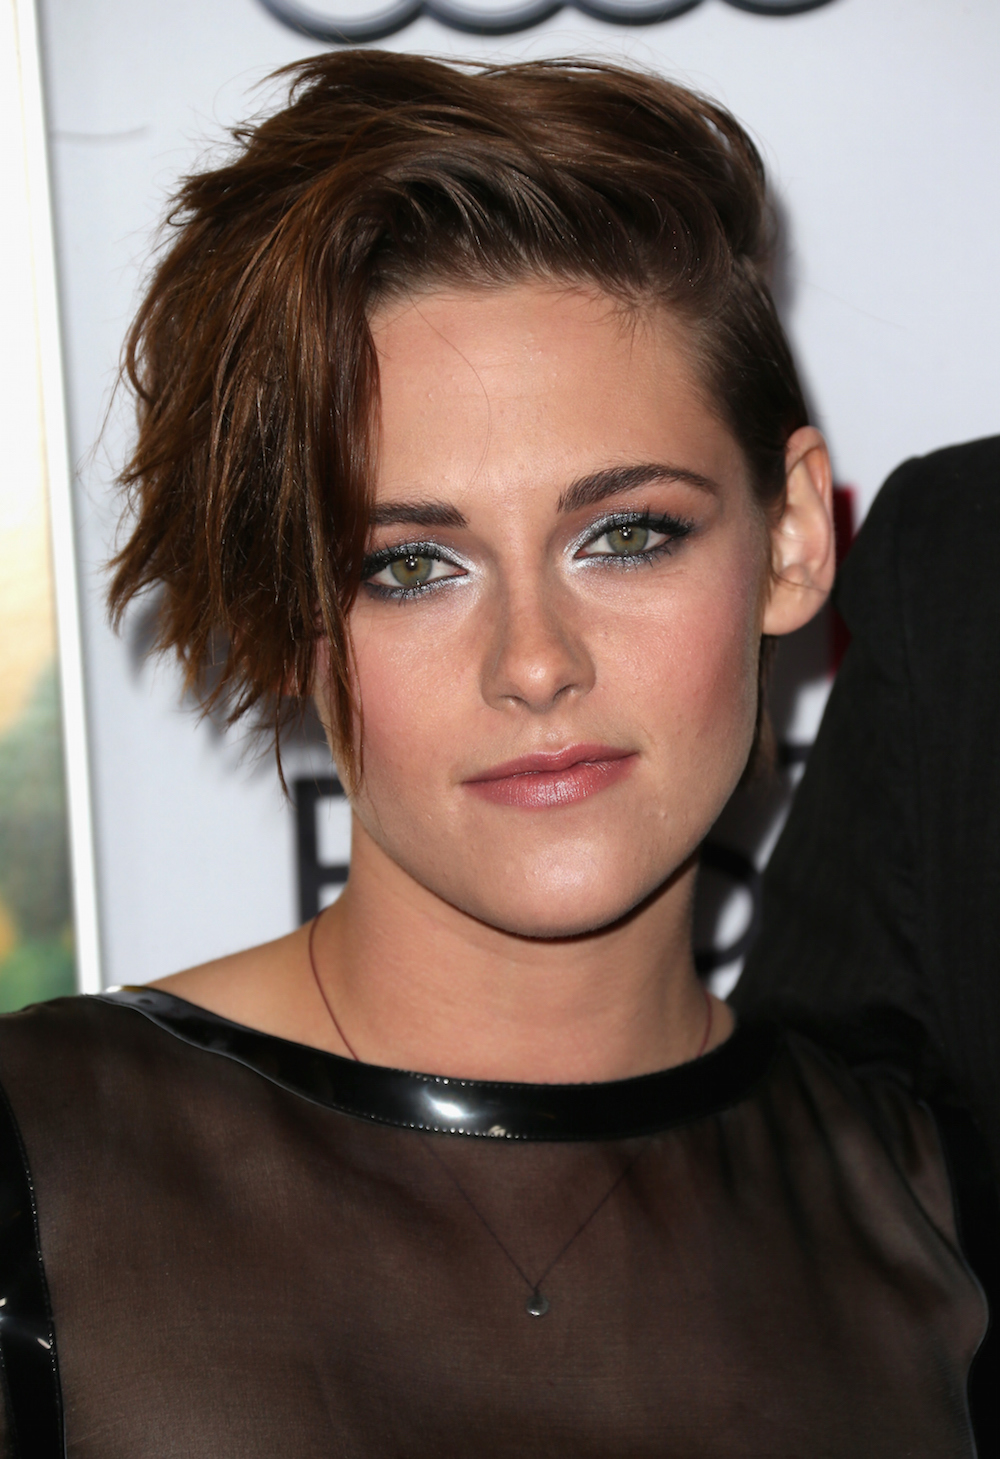 16 Times Kristen Stewart Gave Us Infinite Hair Goals